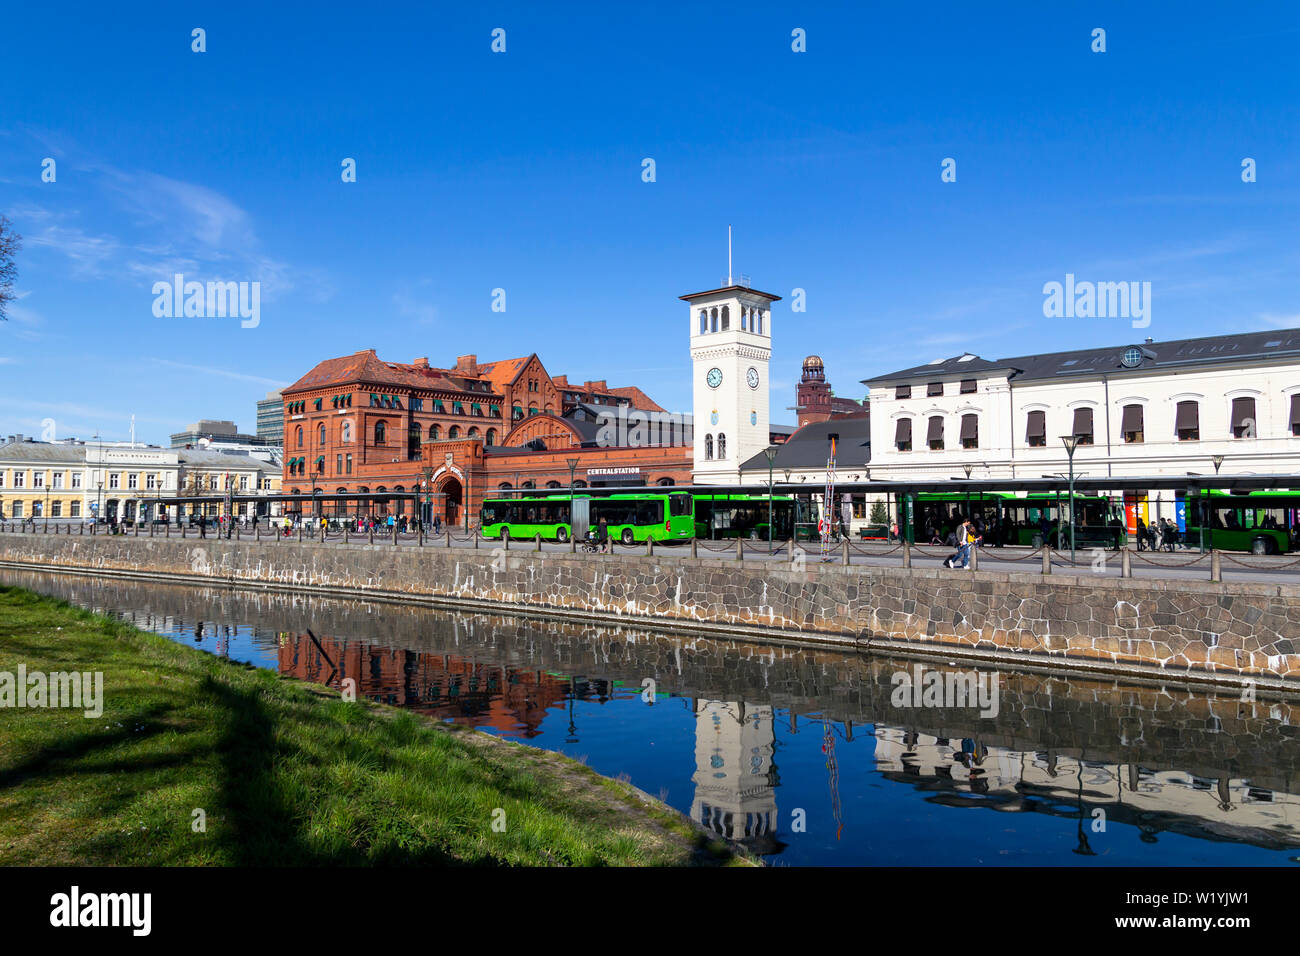 Water canal next to the central Station in the city of Malmo, the third largest city in Sweden Stock Photo